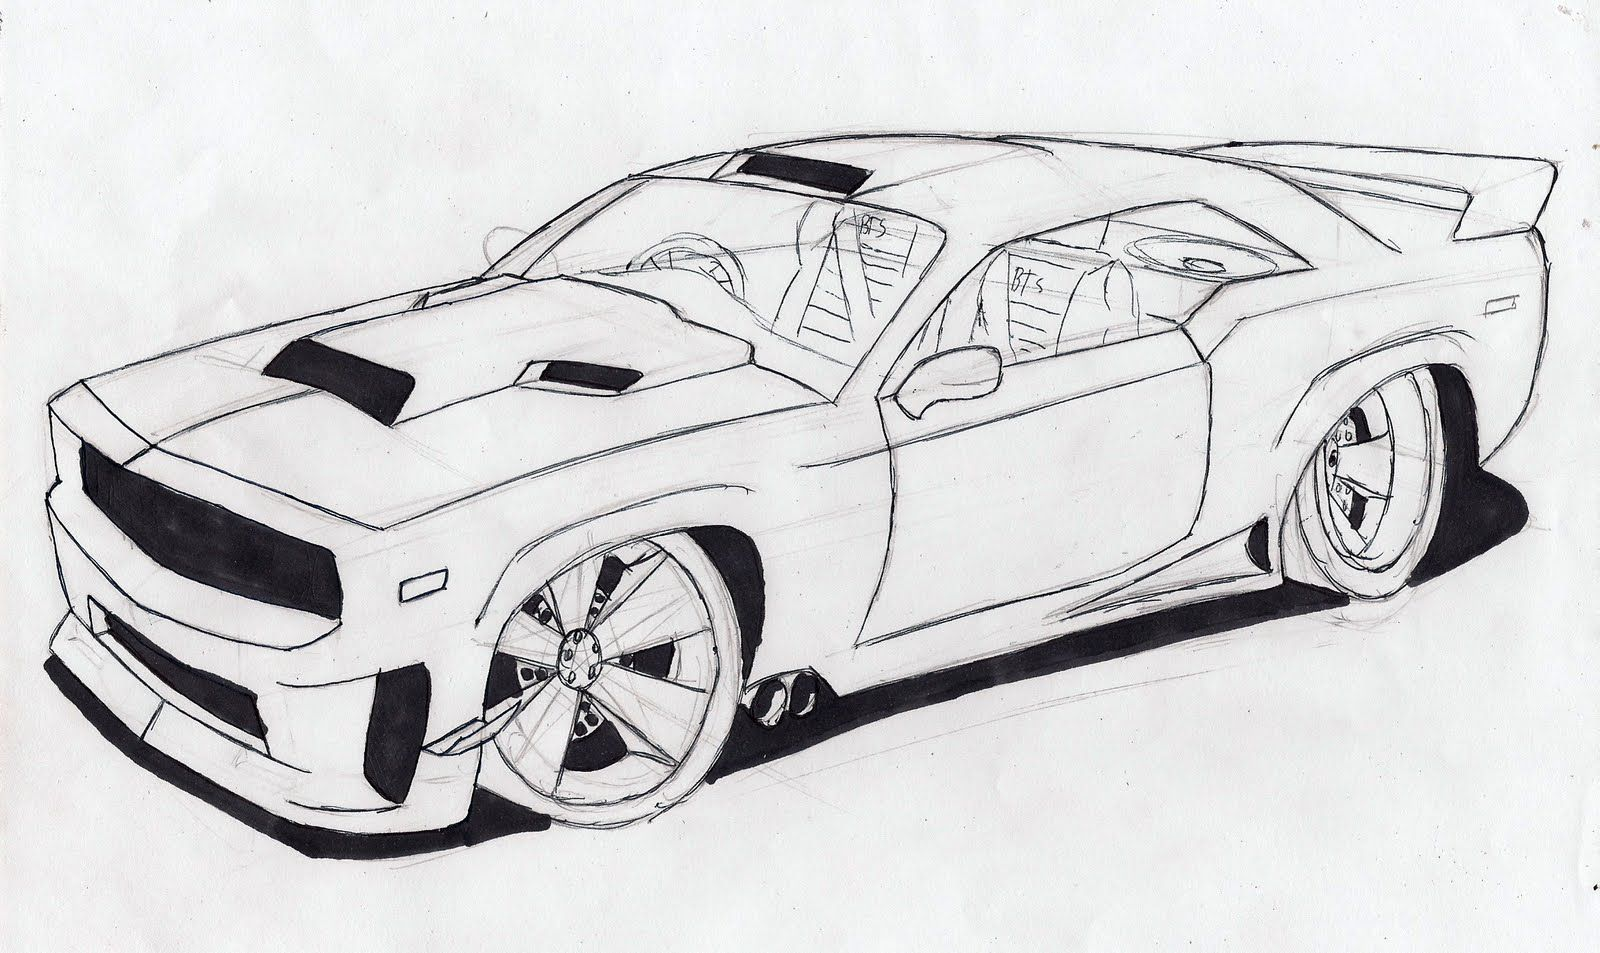 Josiah39 S Drawings How To Draw A Muscle Car Doodles Pinterest